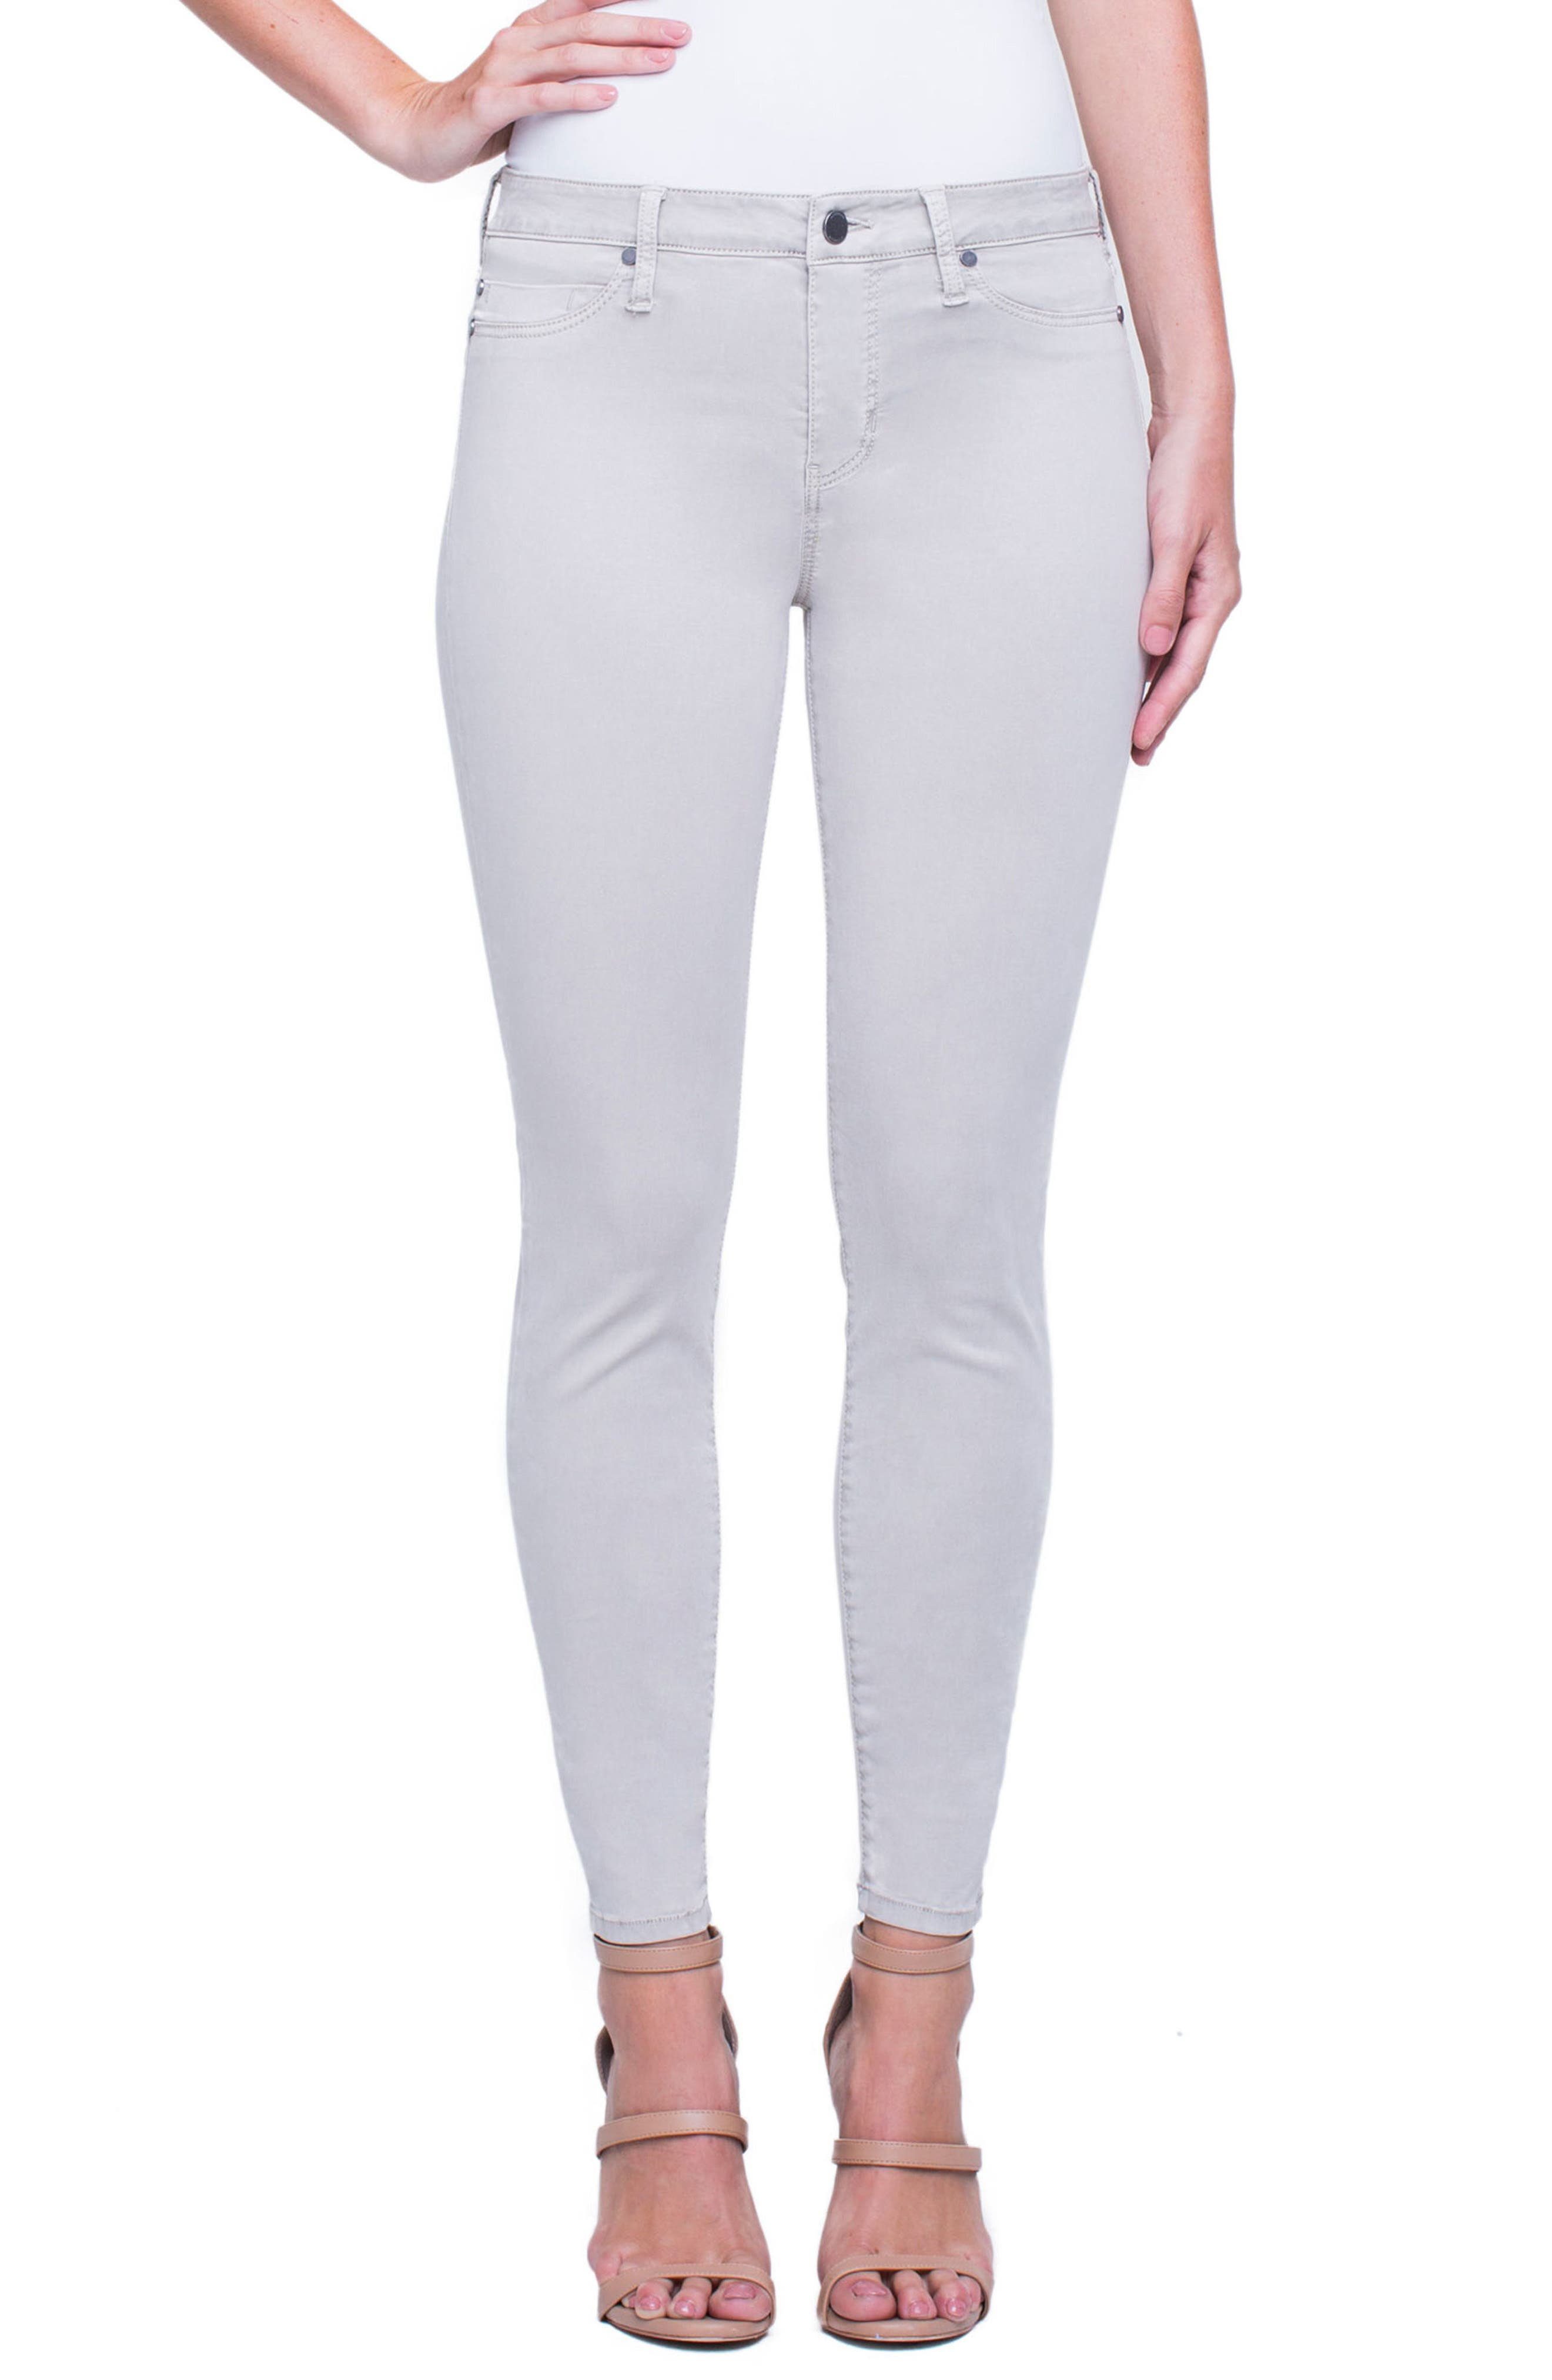 Madonna Ankle Jeans,                             Main thumbnail 1, color,                             Marble Ivory